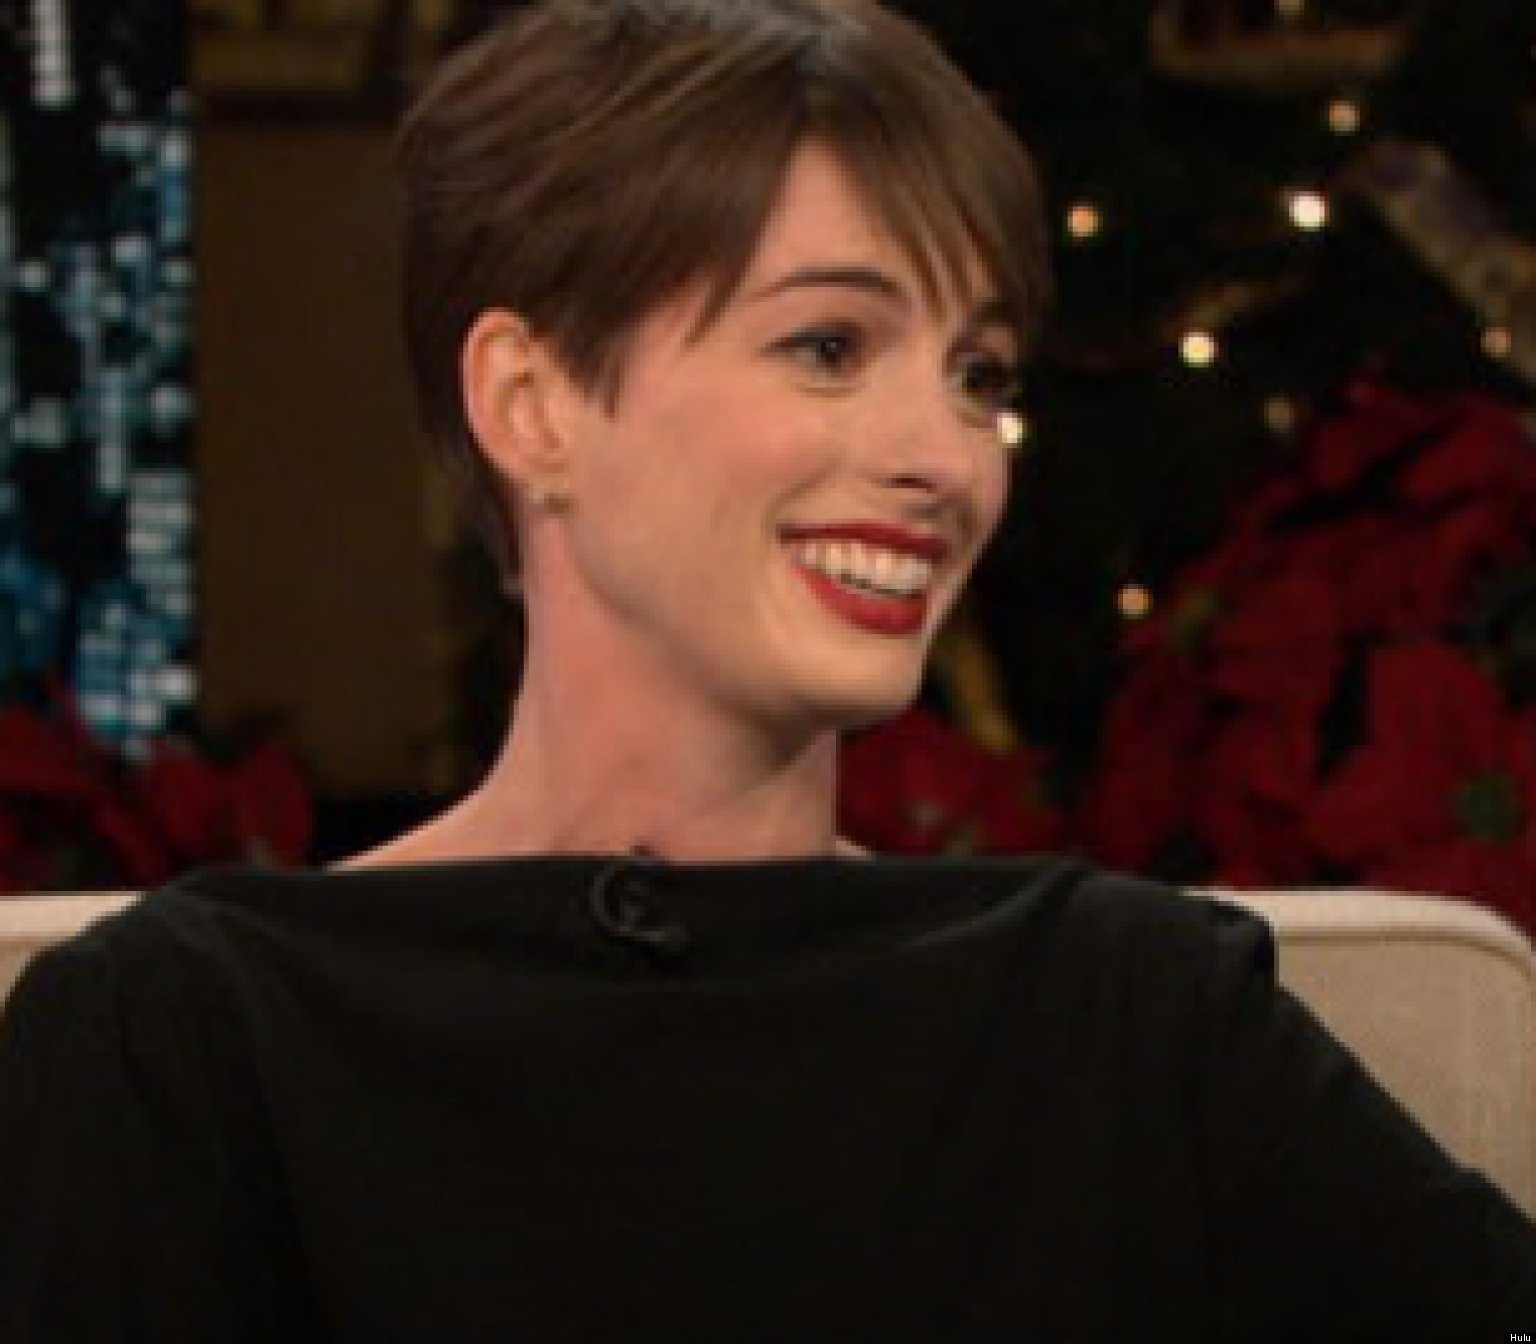 Anne Hathaway's Marriage: Star Says She Picked Fights